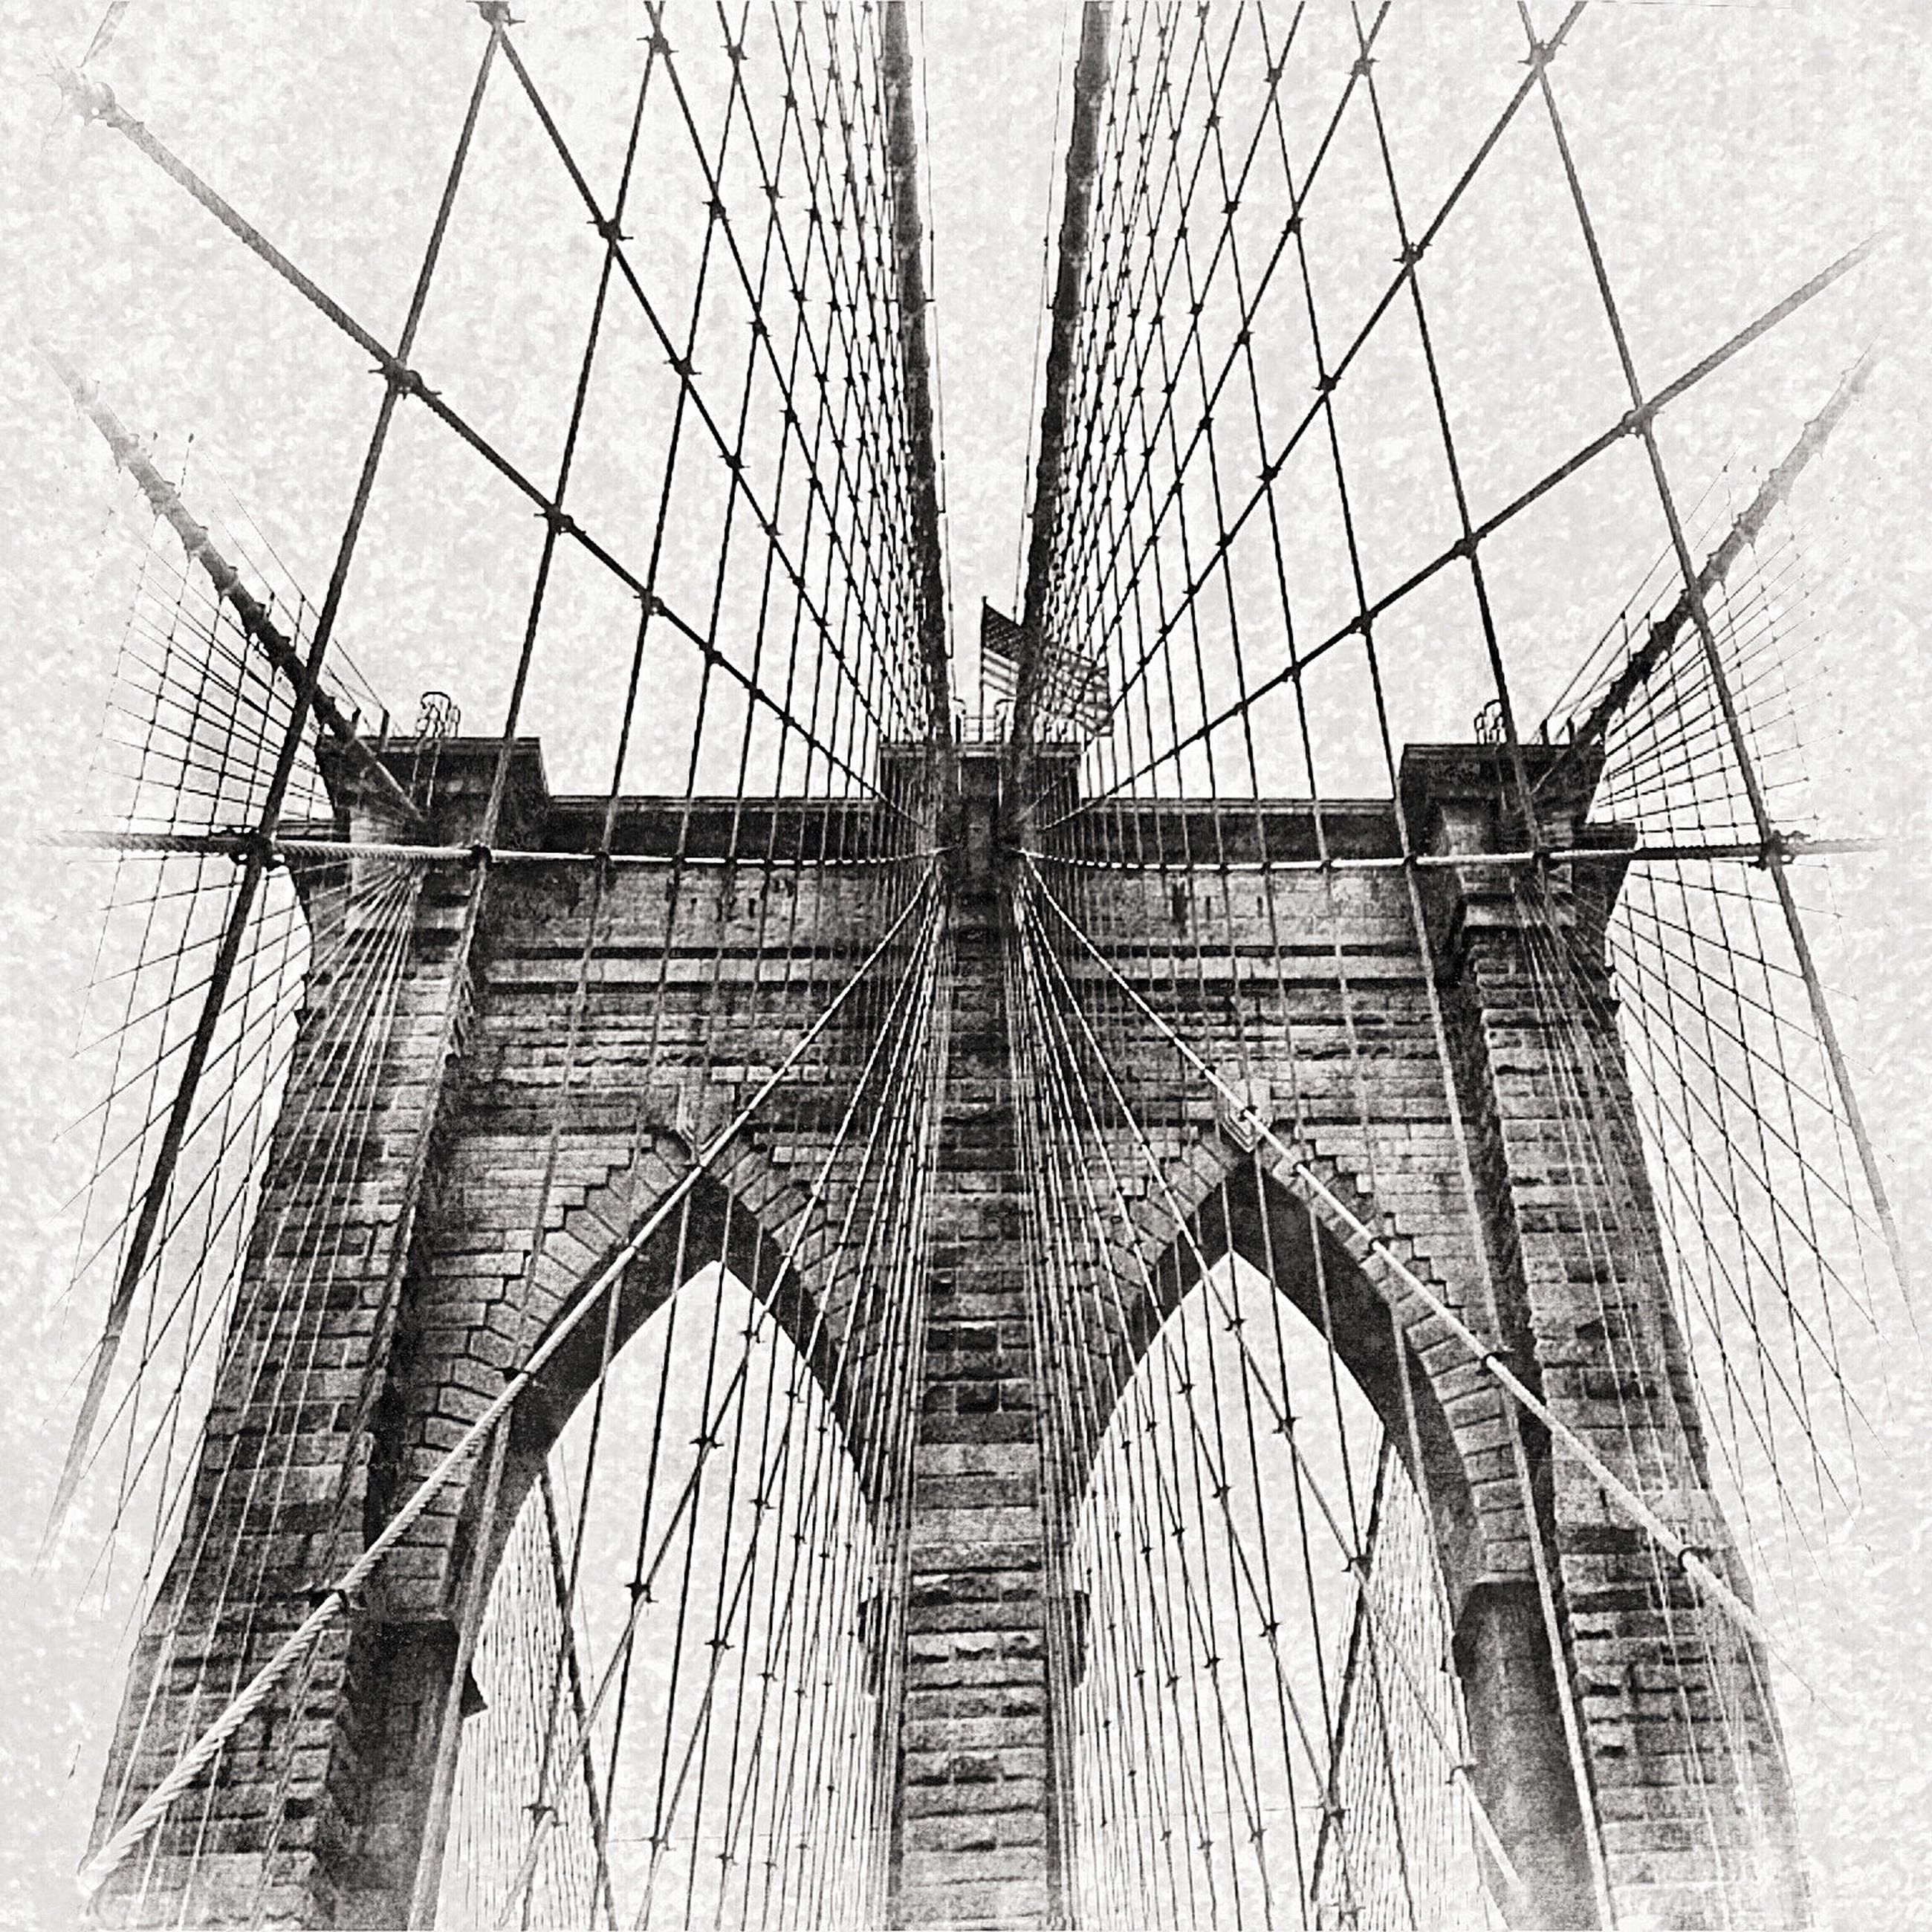 architecture, built structure, building exterior, low angle view, connection, tall - high, city, modern, international landmark, famous place, travel destinations, clear sky, skyscraper, capital cities, engineering, tower, bridge - man made structure, day, sky, suspension bridge